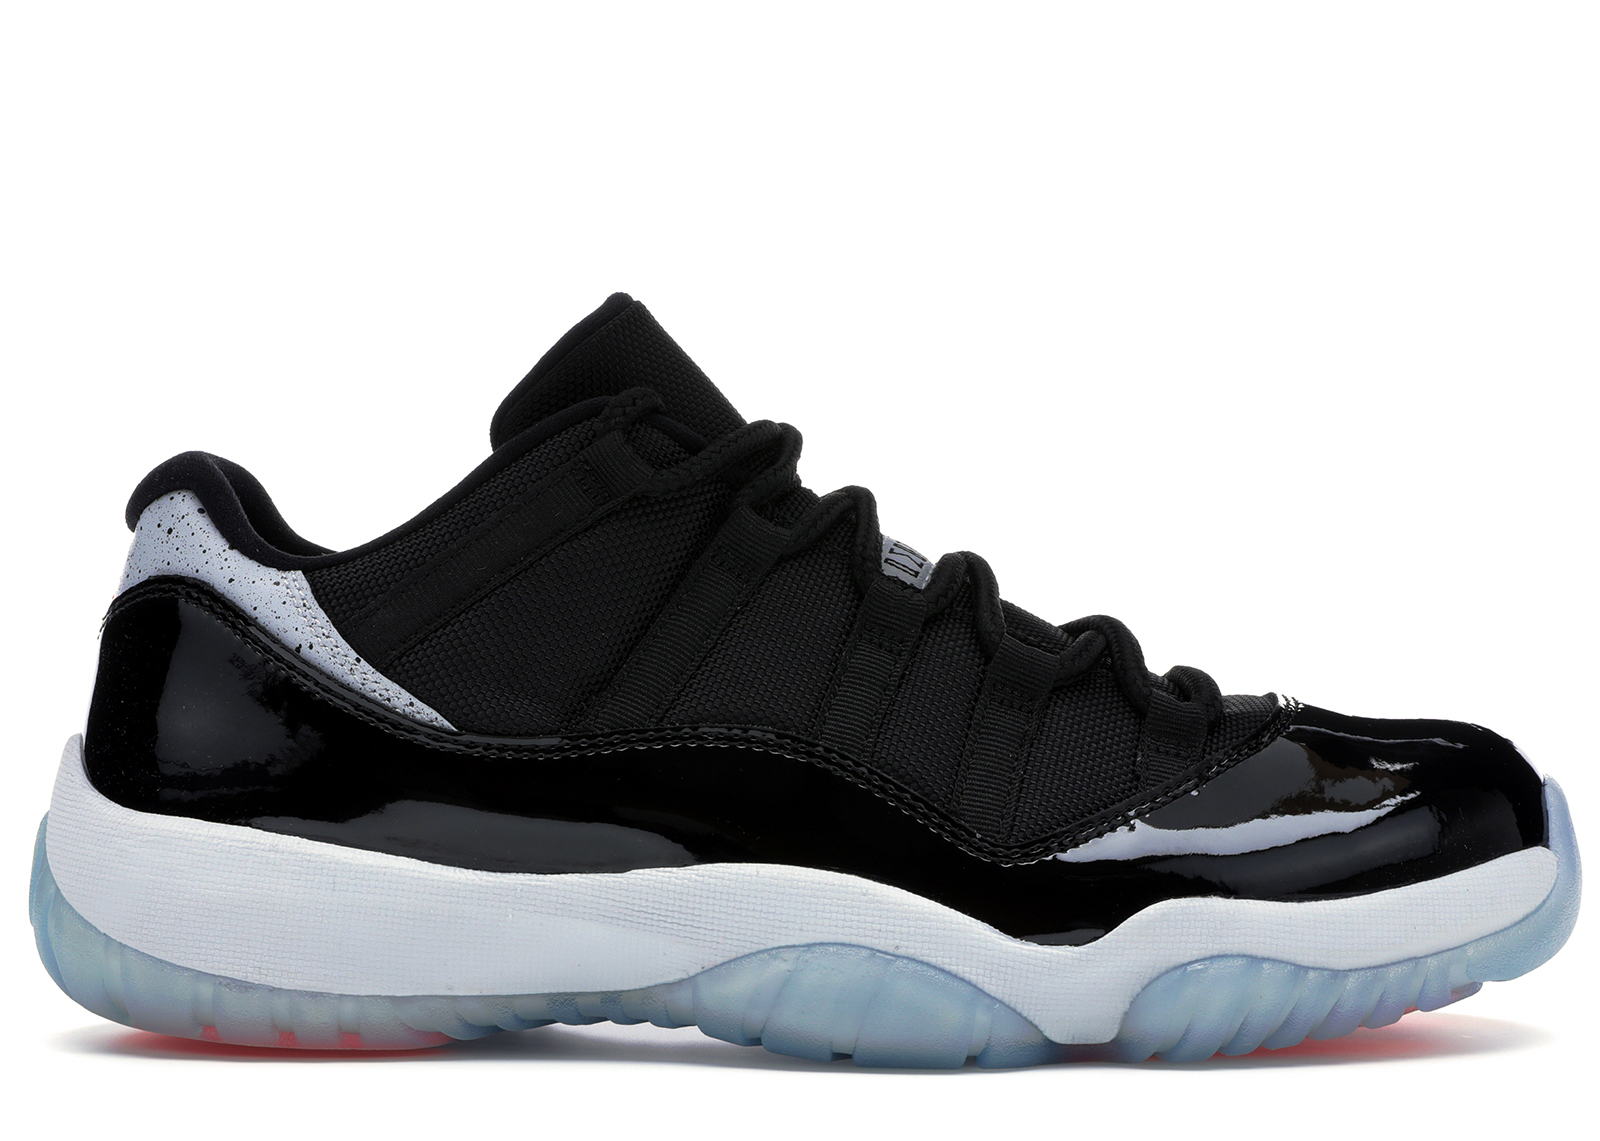 official photos 4ddd0 80b21 ... wholesale jordan 11 retro low infrared 528895 023 f8463 45539